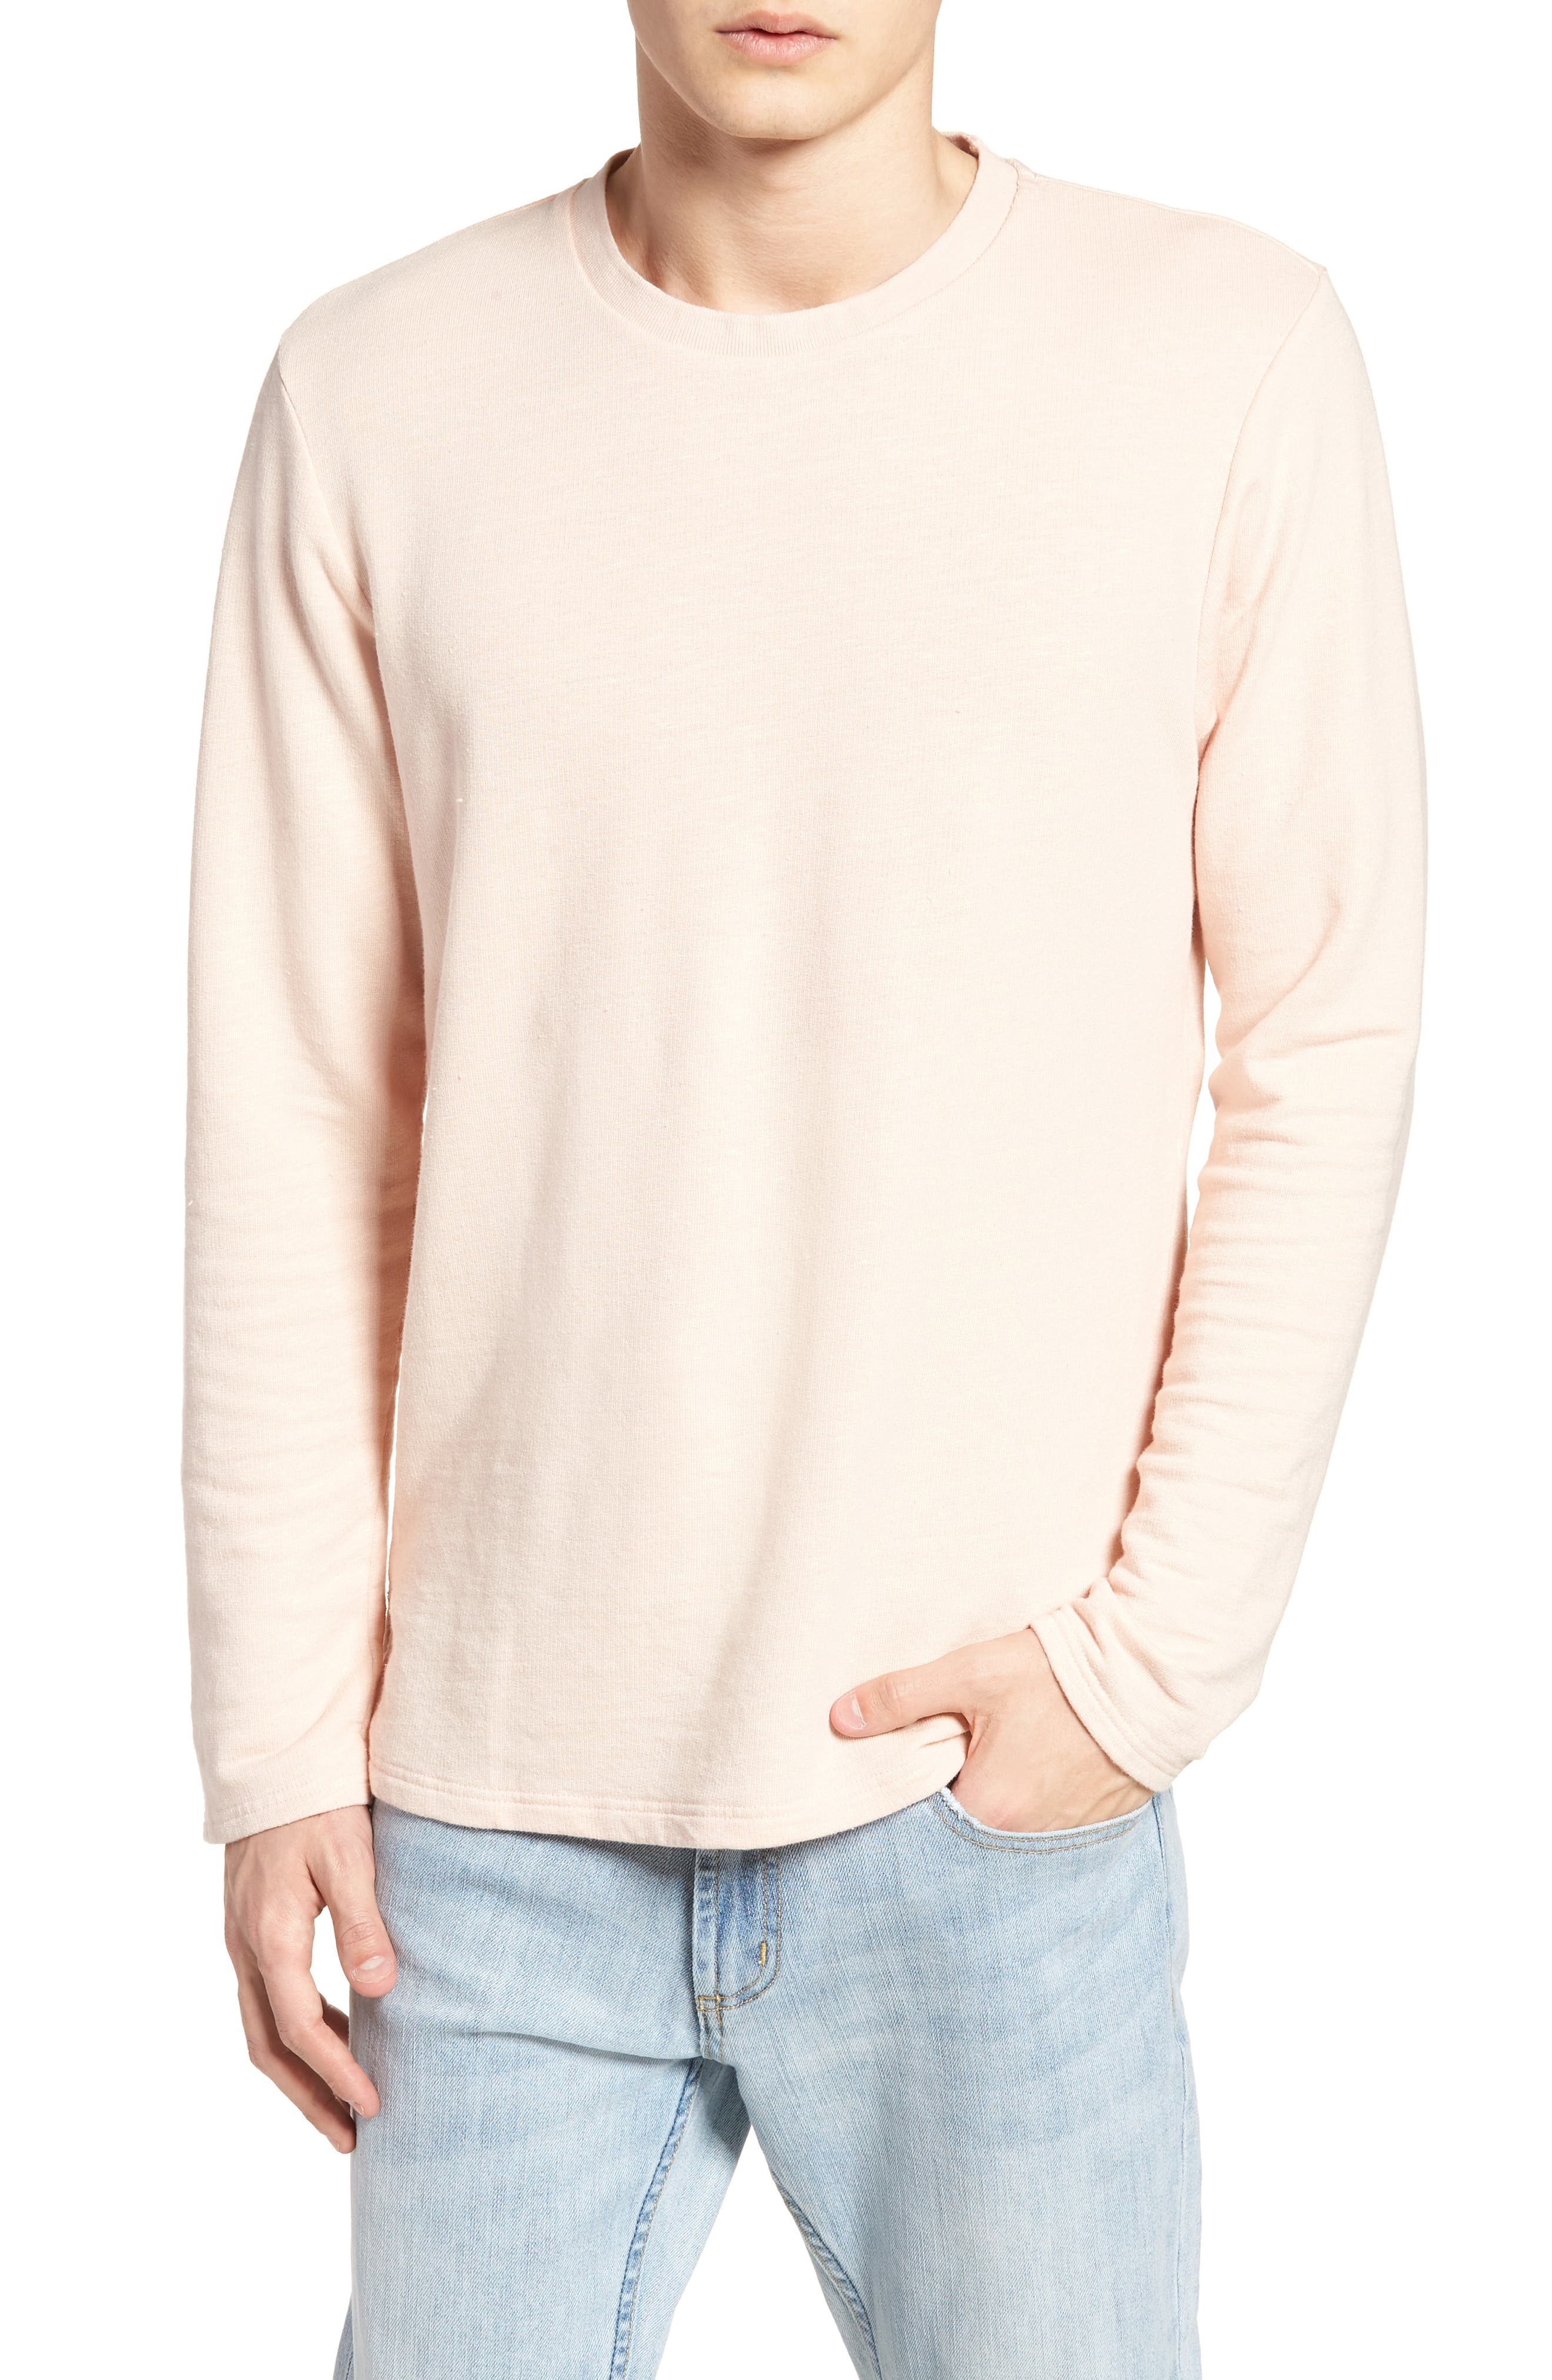 Stripe Crewneck Sweater,                         Main,                         color, Pink Ash